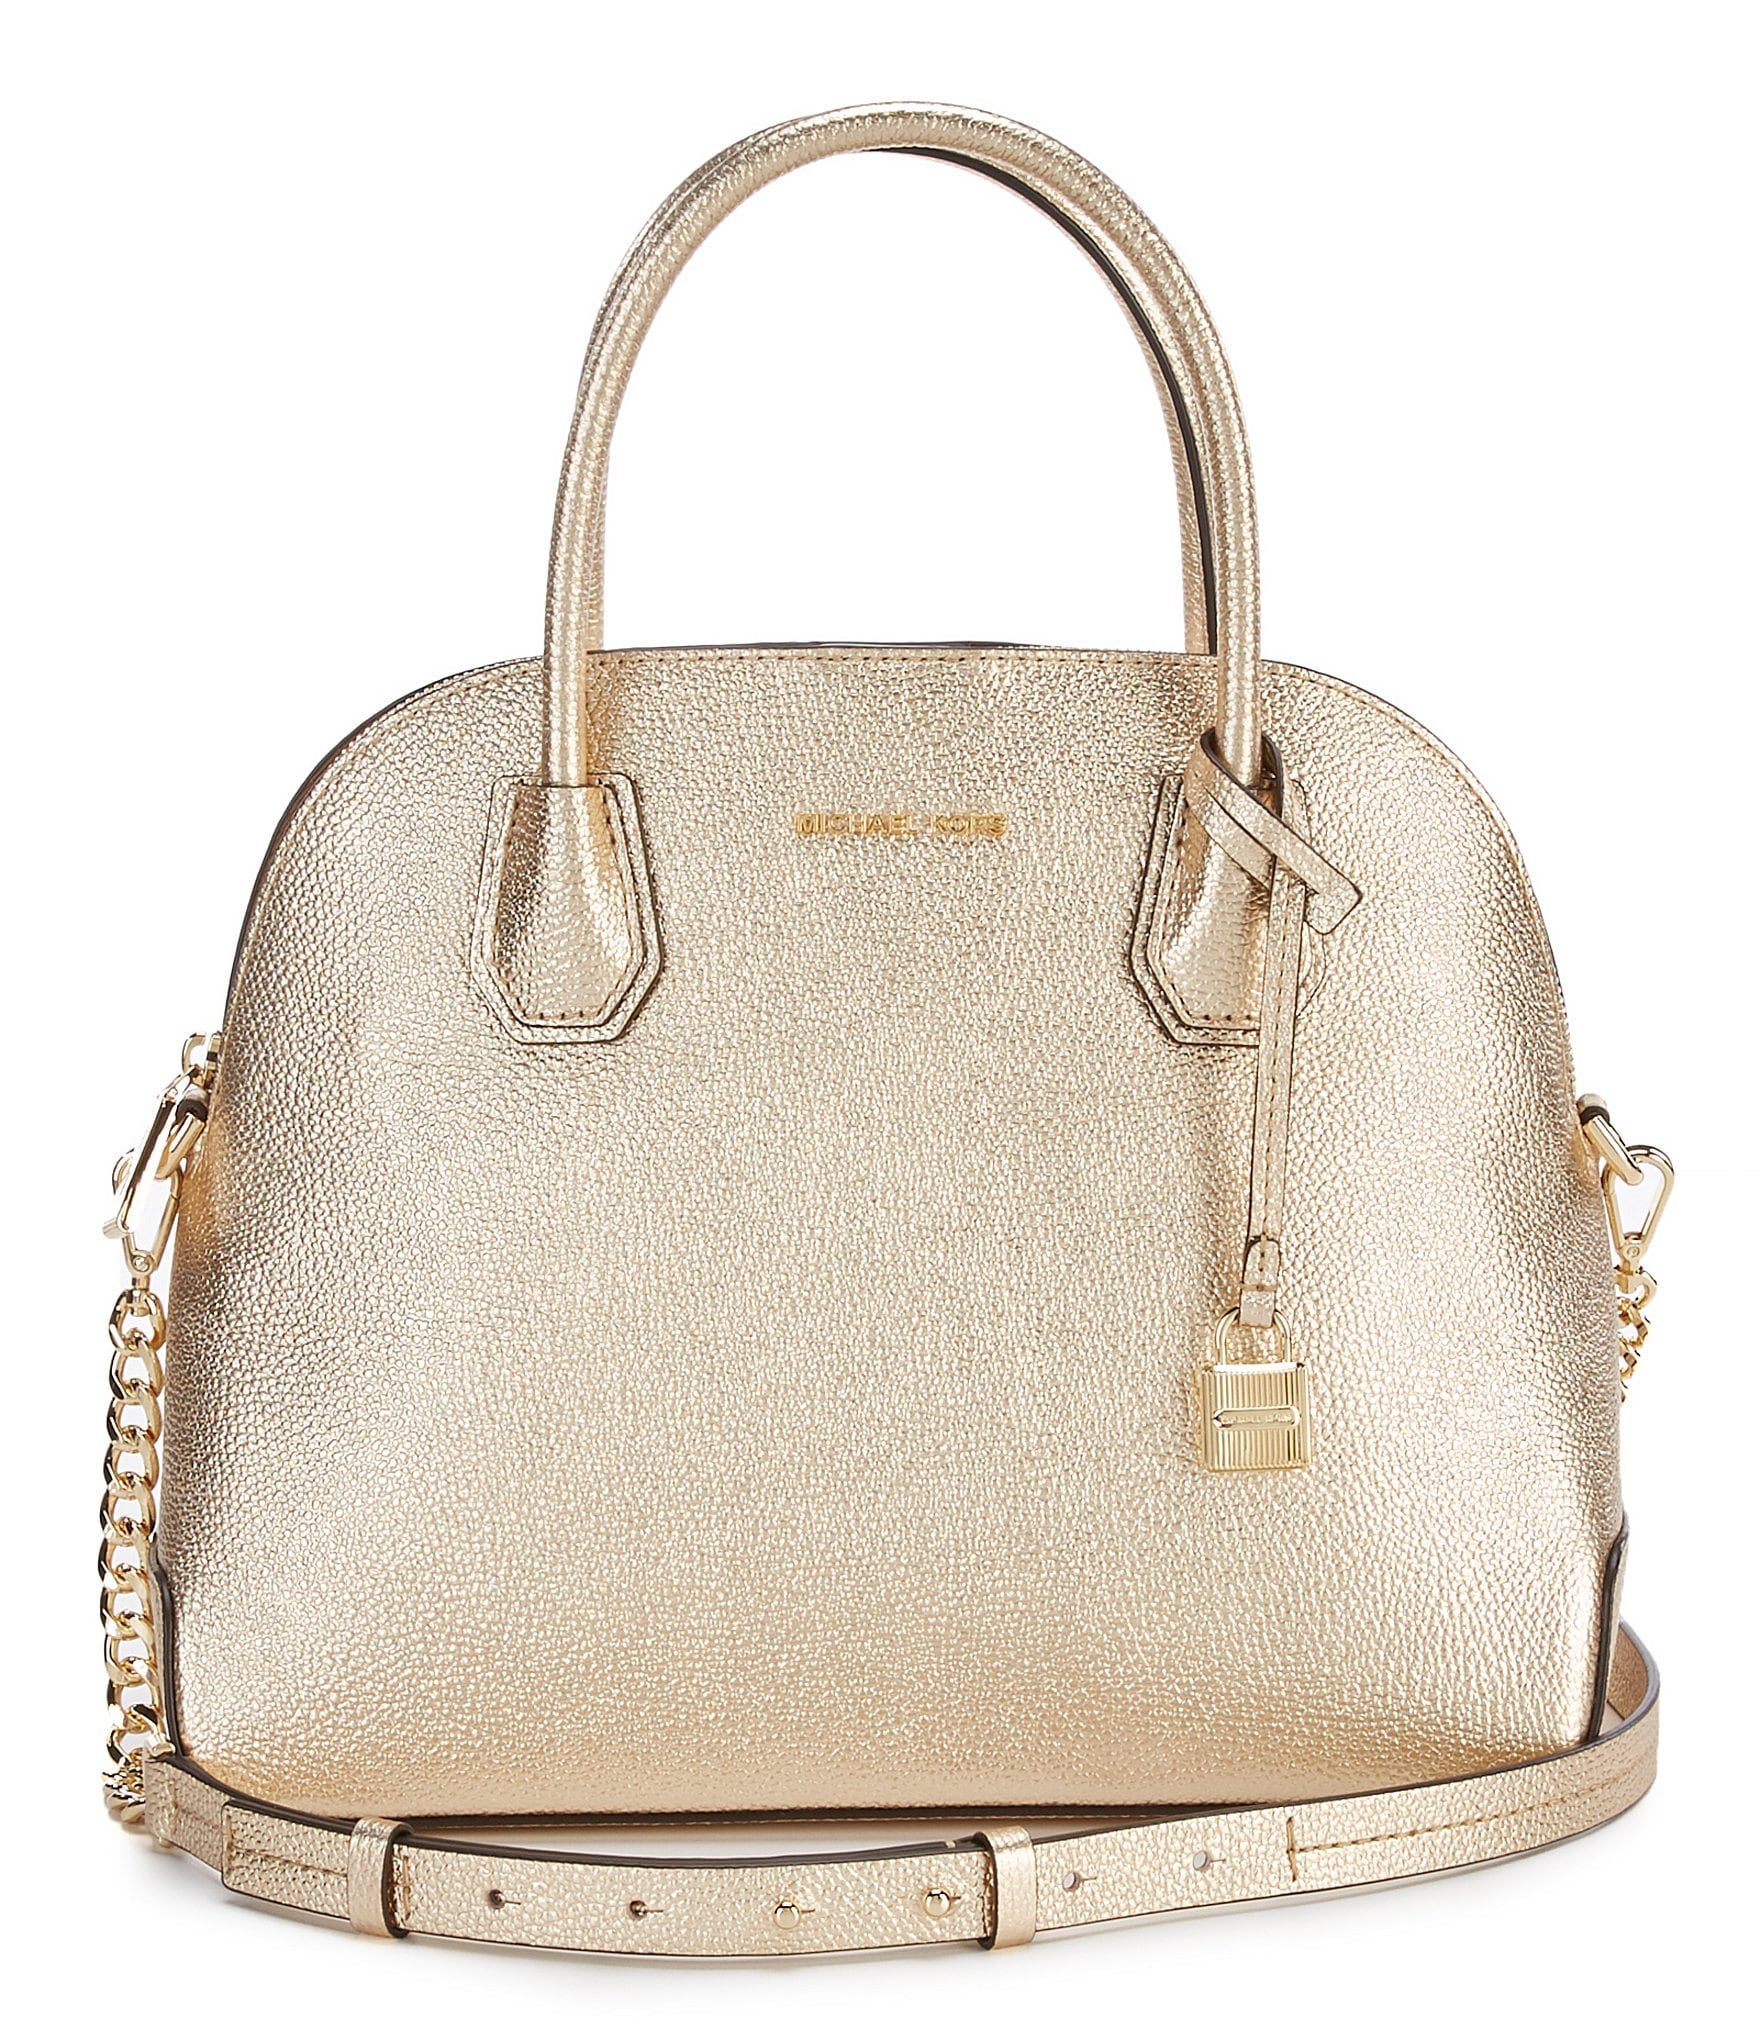 SHOPBOP - MICHAEL Michael Kors FASTEST FREE SHIPPING WORLDWIDE on MICHAEL Micha.